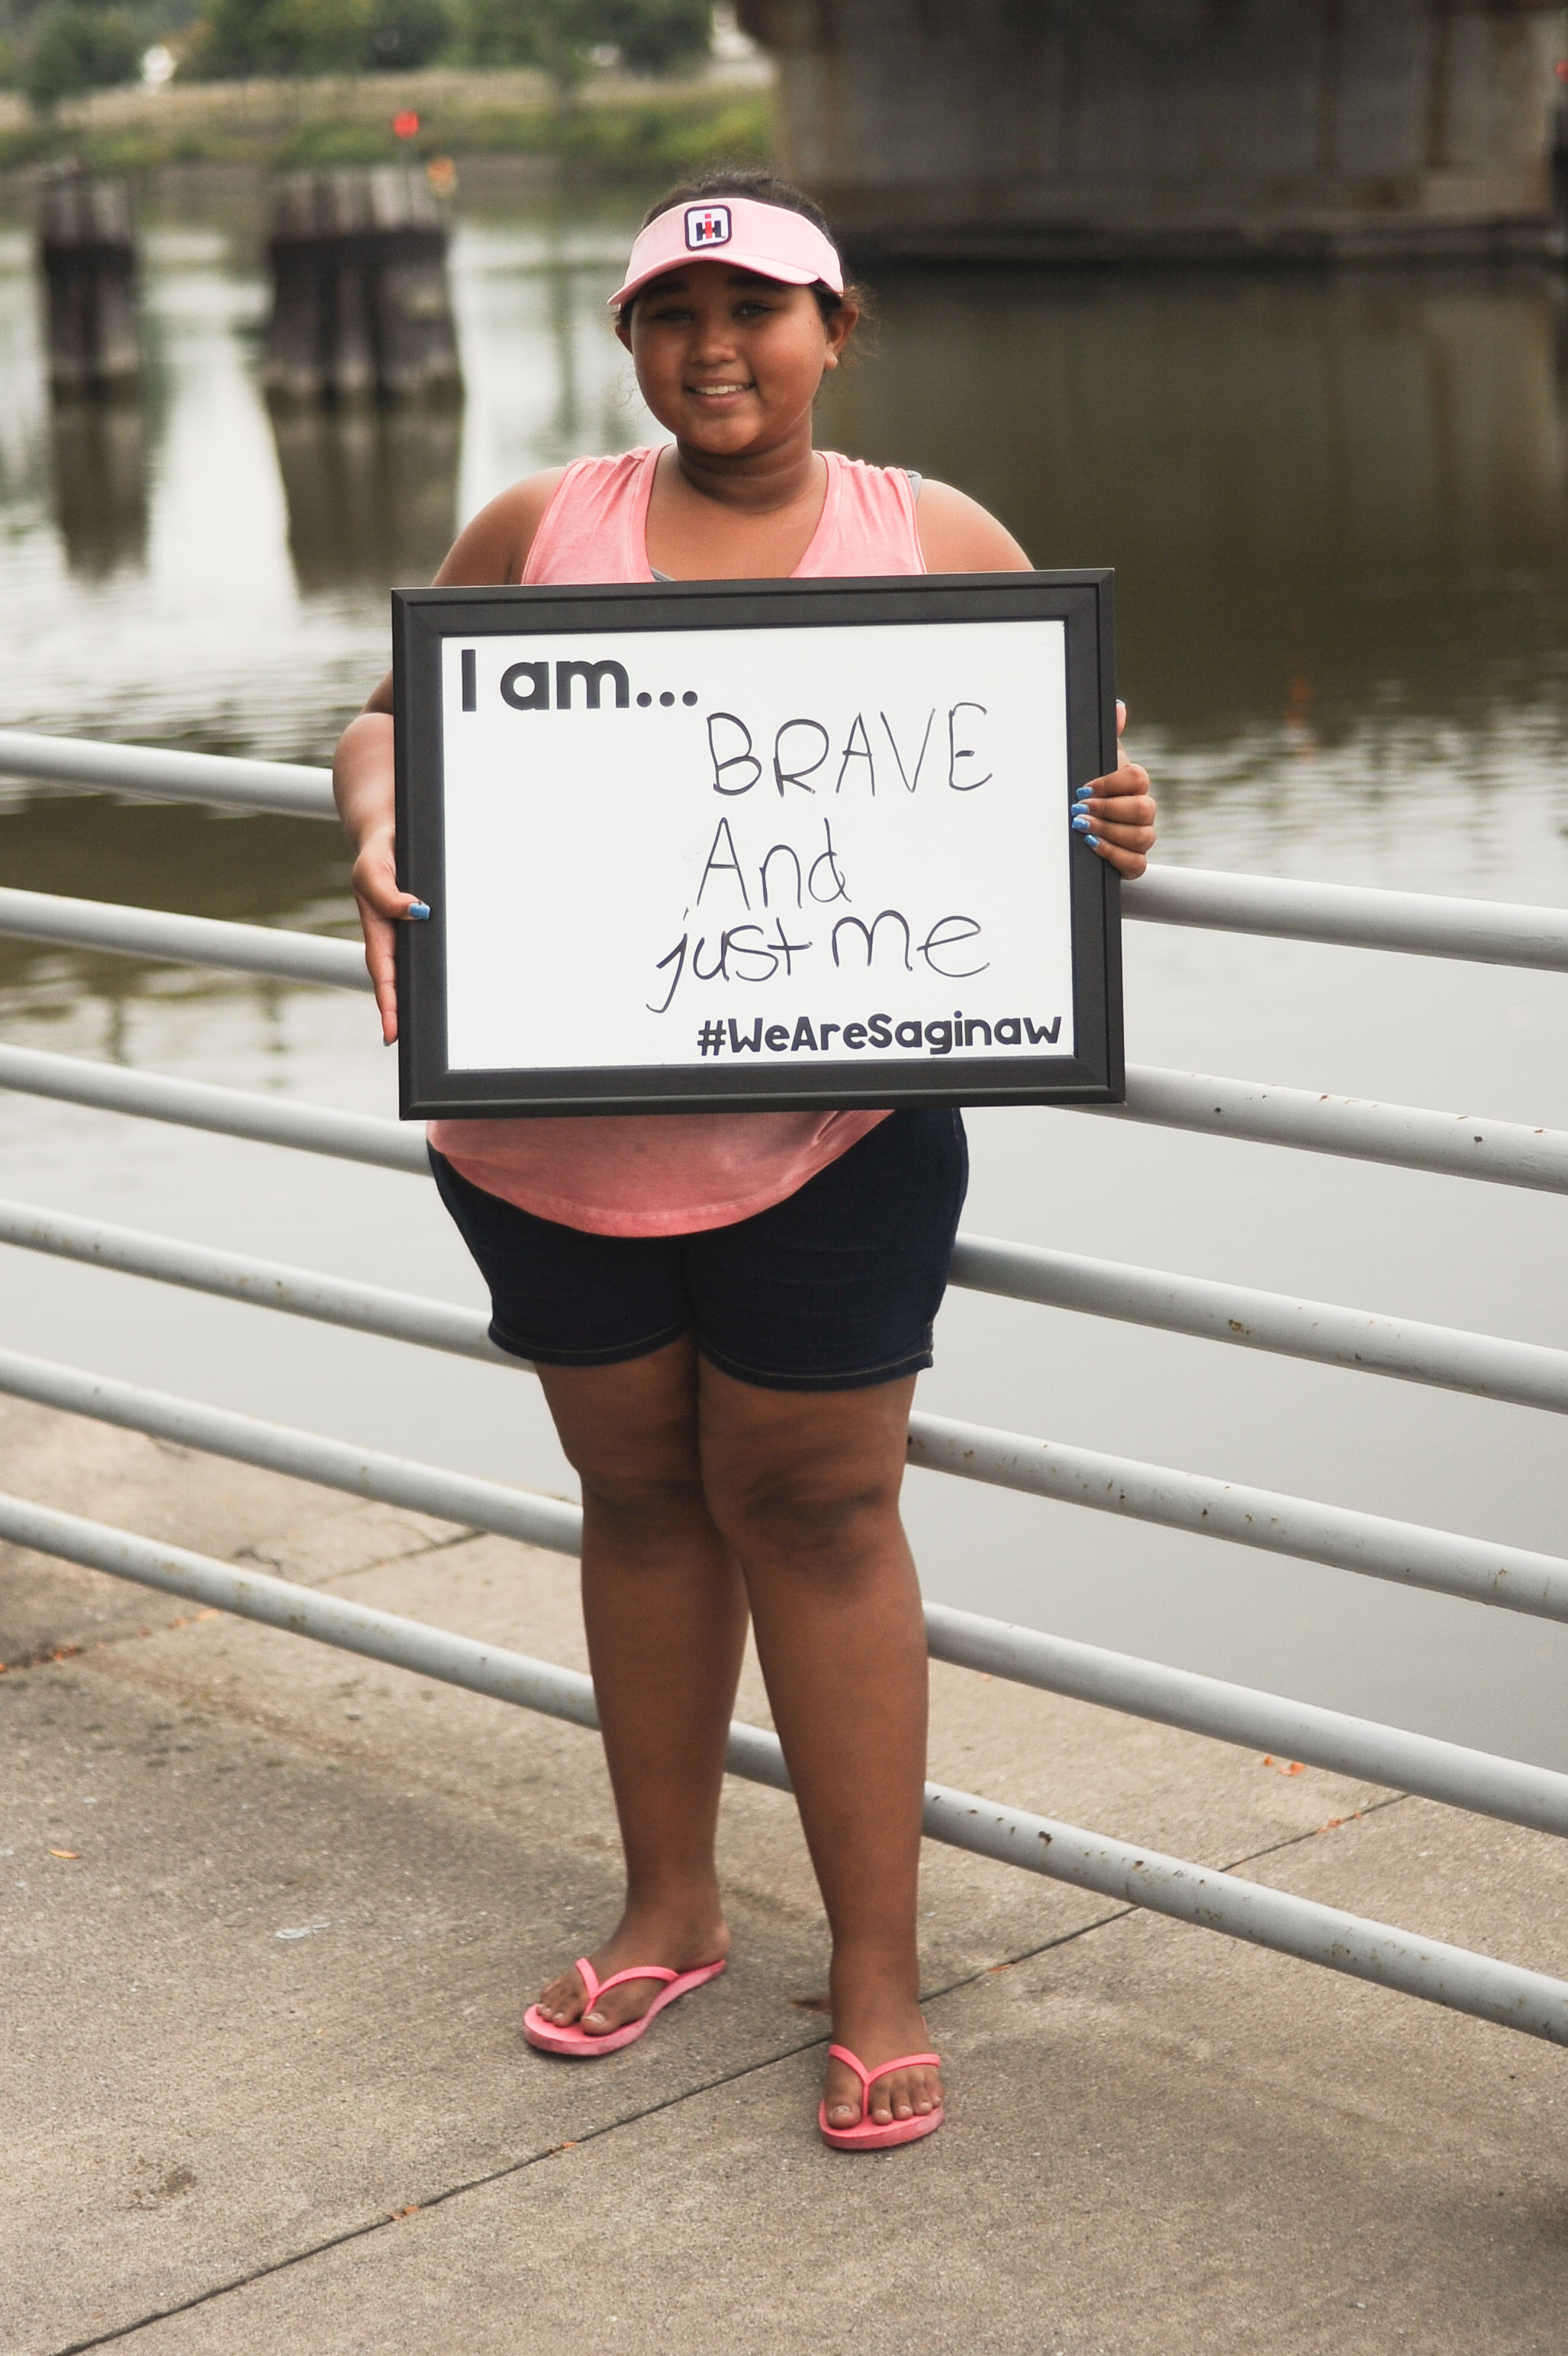 I AM… Brave And Just Me